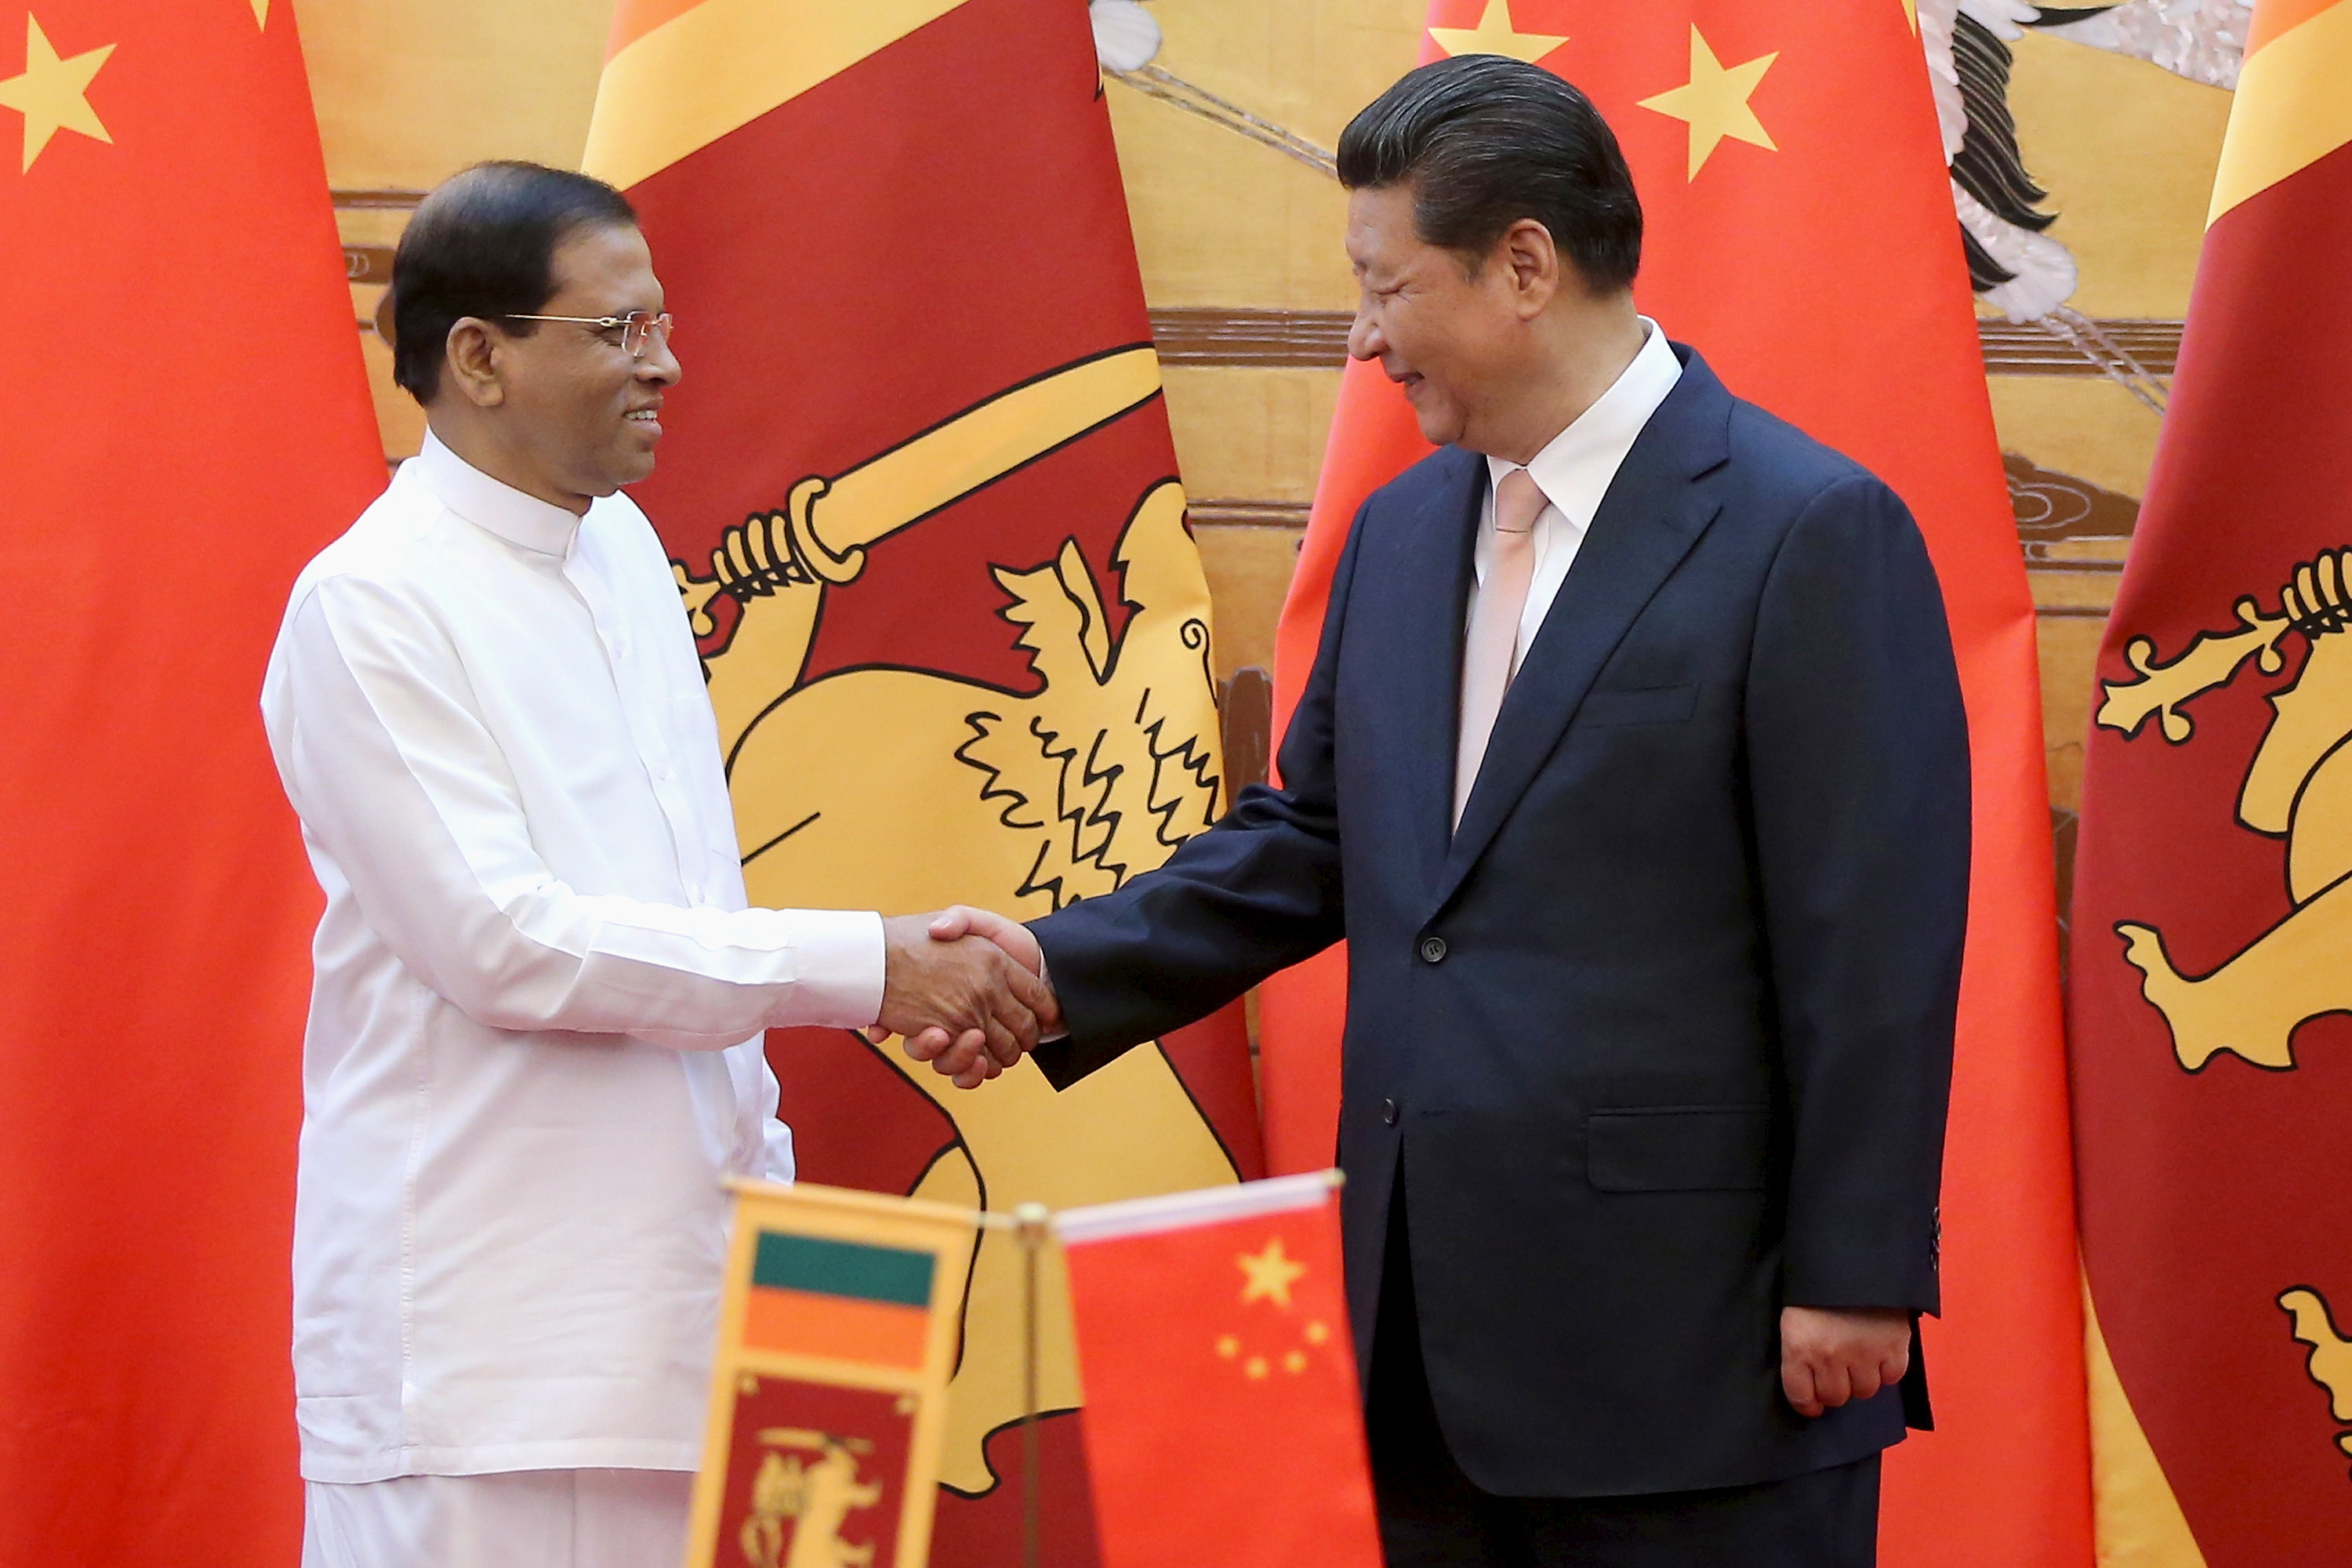 Sri Lankan President Maithripala Sirisena (Left) shakes hands with Chinese President Xi Jinping (Right) during a signing ceremony in the Great Hall of the People on March 26, 2015 in Beijing, China. REUTERS/Feng Li-Poo/Pool - RTR4UWHZ